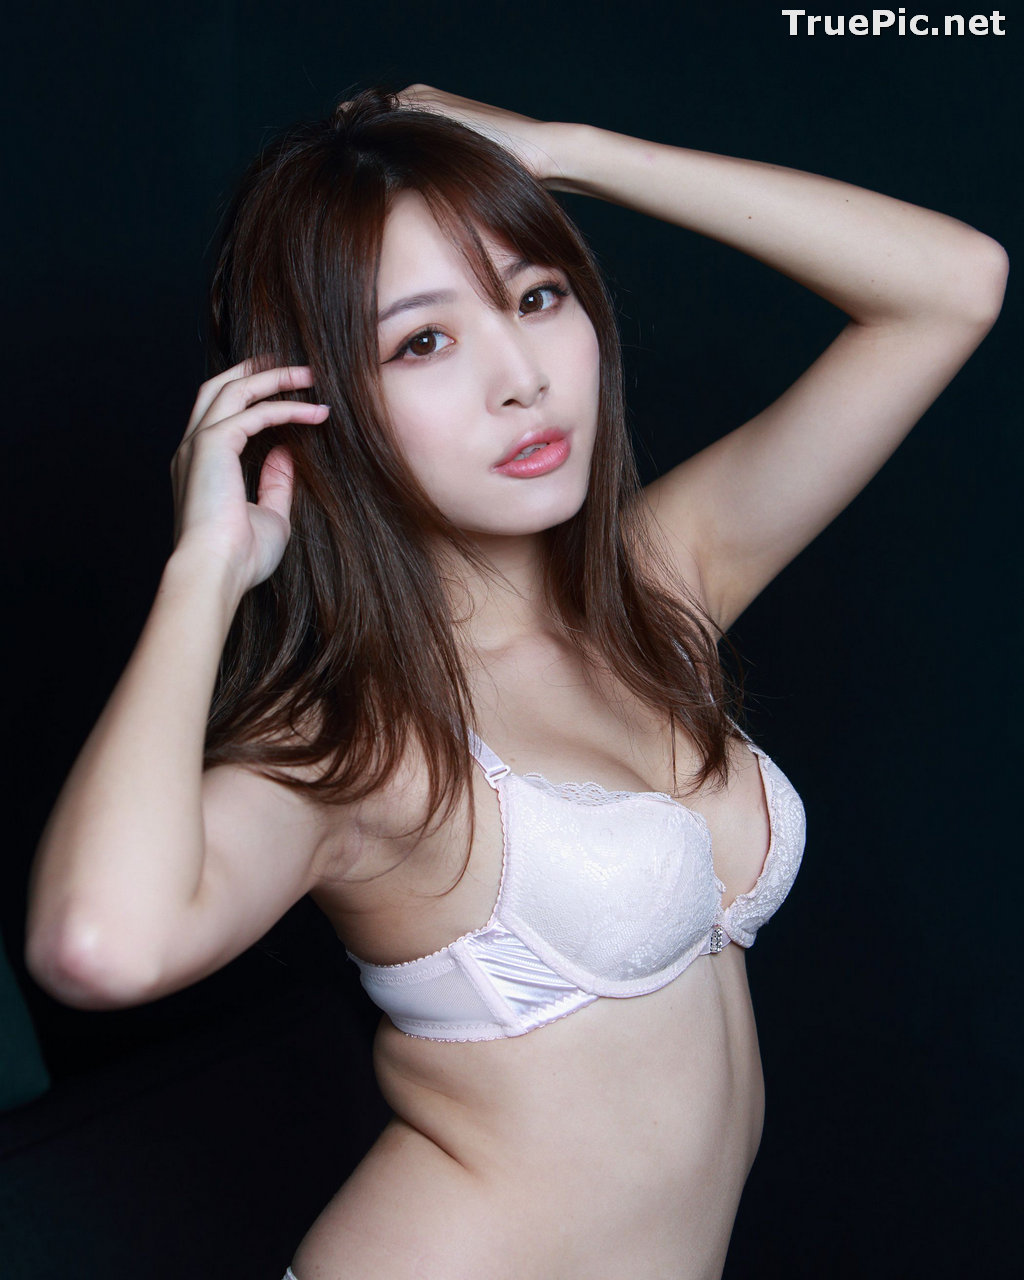 Image Taiwanese Model - Ash Ley - Sexy Girl and White Lingerie - TruePic.net - Picture-6